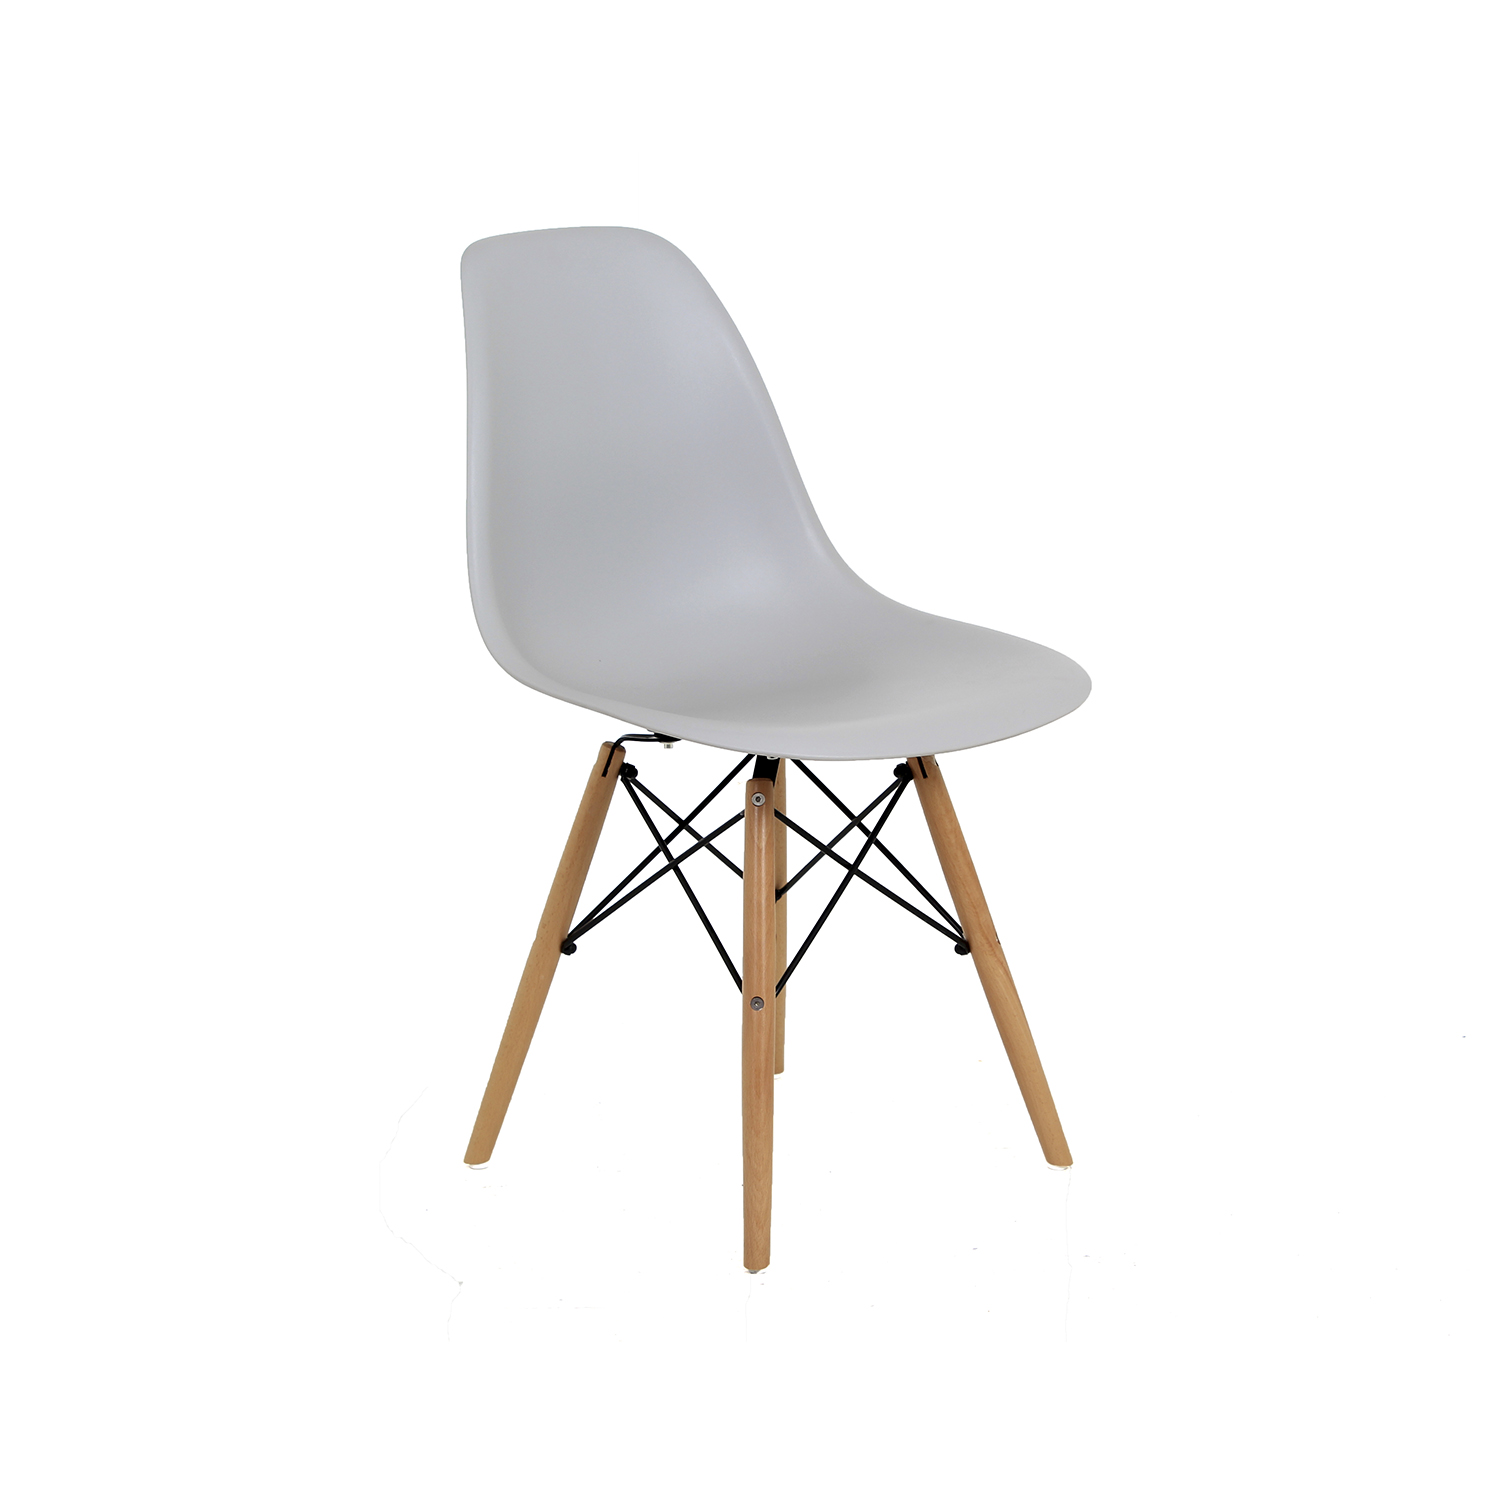 Silla replica eames en colores intermueble spacios sa de cv for Replicas de sillas